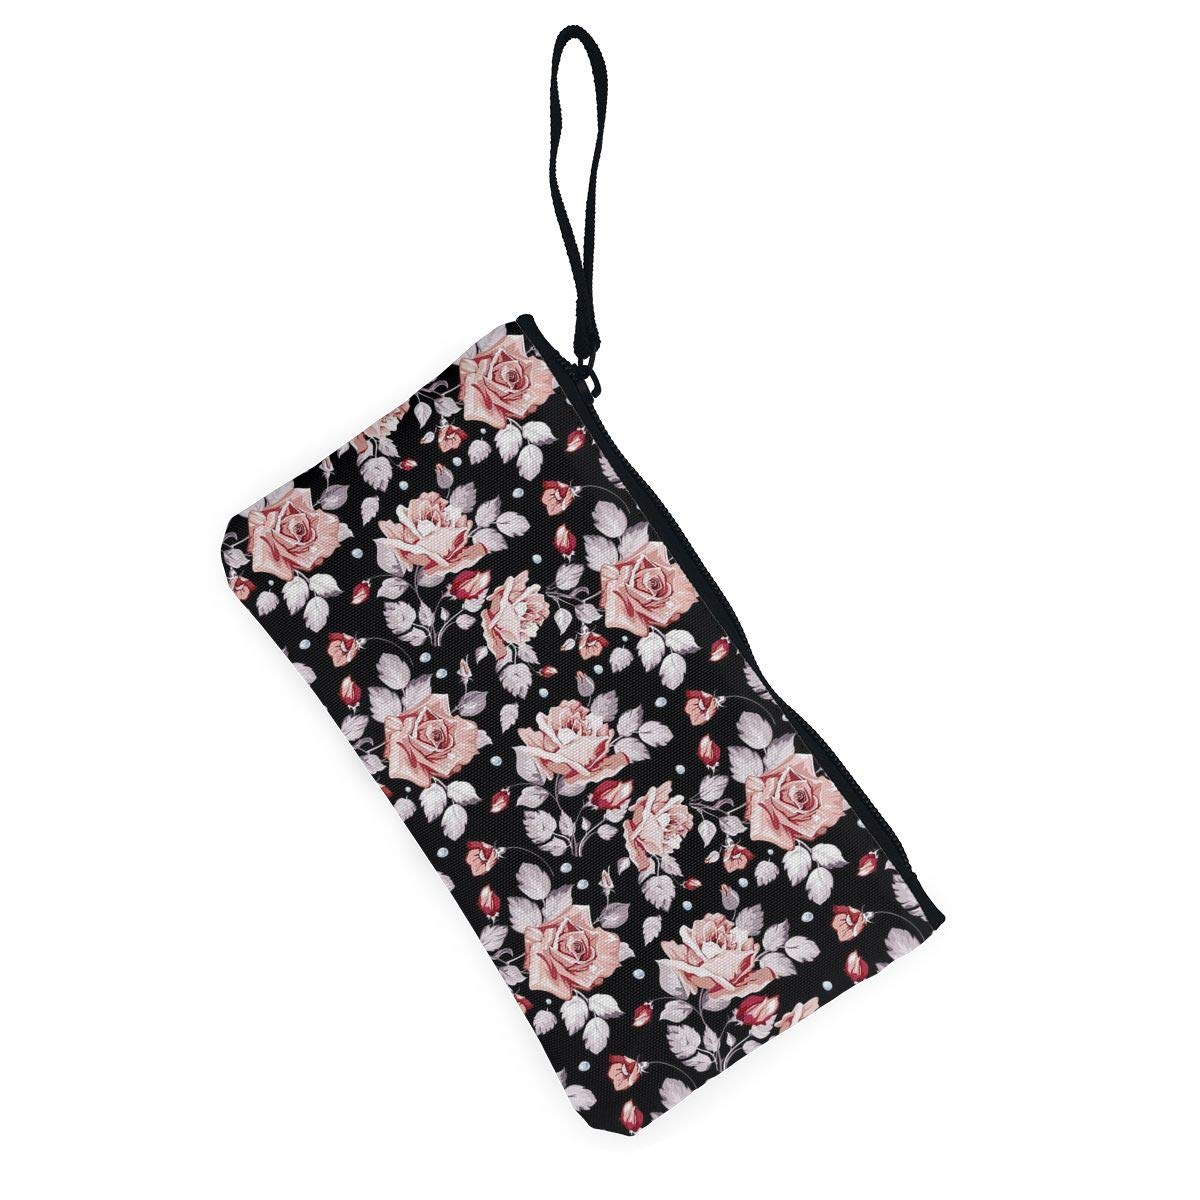 Coin Pouch Pink Flower Pattern Canvas Coin Purse Cellphone Card Bag With Handle And Zipper